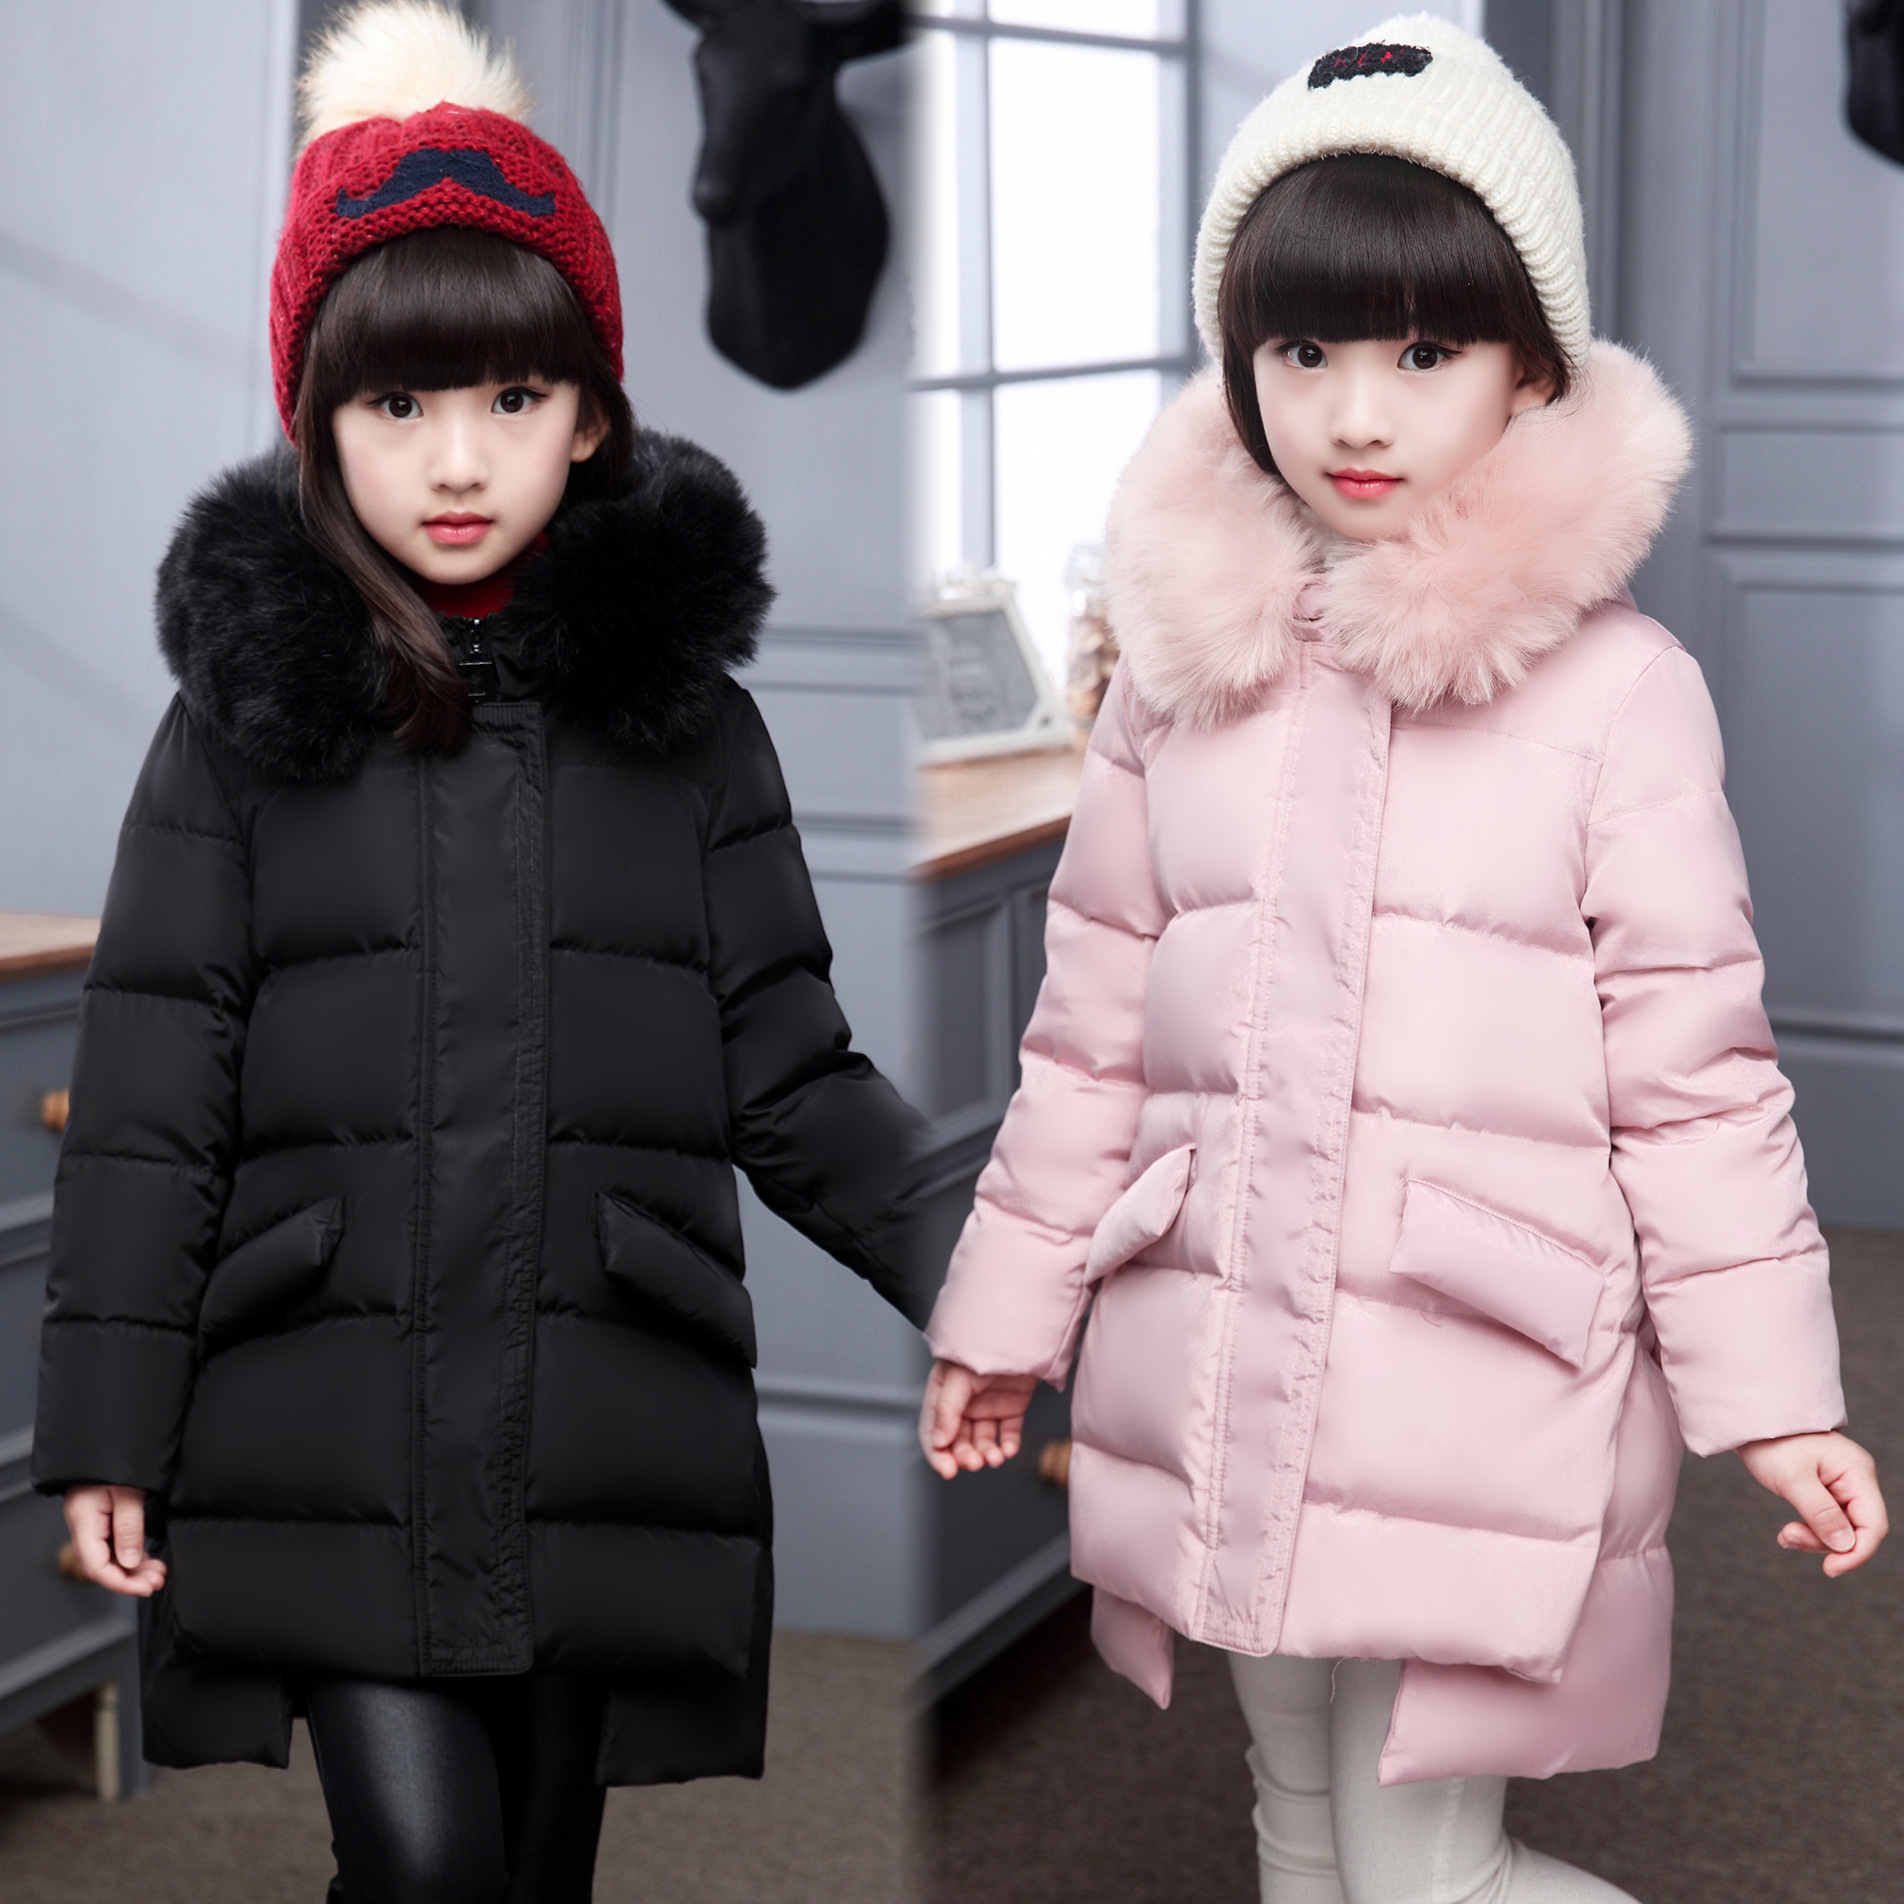 Girls Winter Thicker Warm Coat Children's Parkas Winter Down Jackets For Girls Girls Long Down Jacket with Big Fur Collar ironwalls 2pcs set car headlight cree csp chips 72w hi low beam led driving light auto front fog light for audi toyota honda